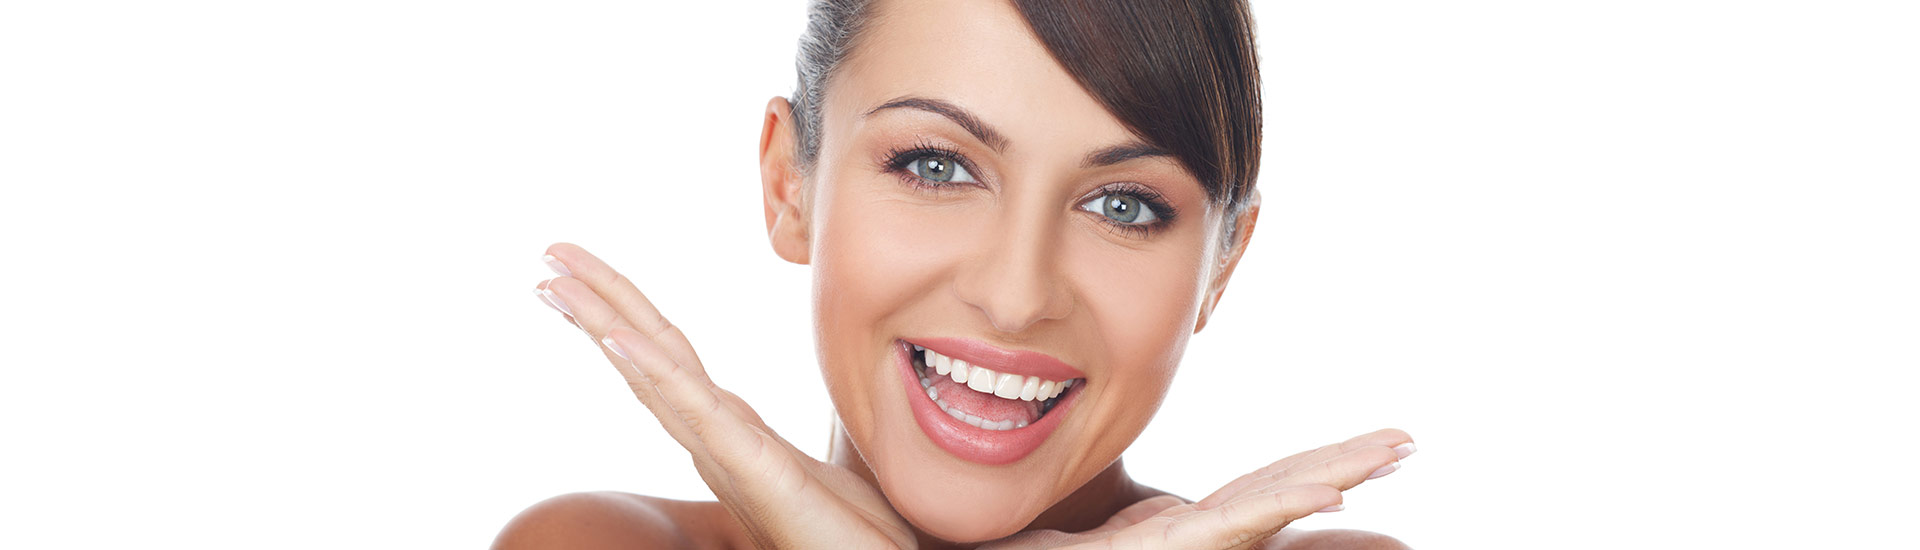 3 Dental Procedures That are Effective Solutions to Your Oral Health Problems